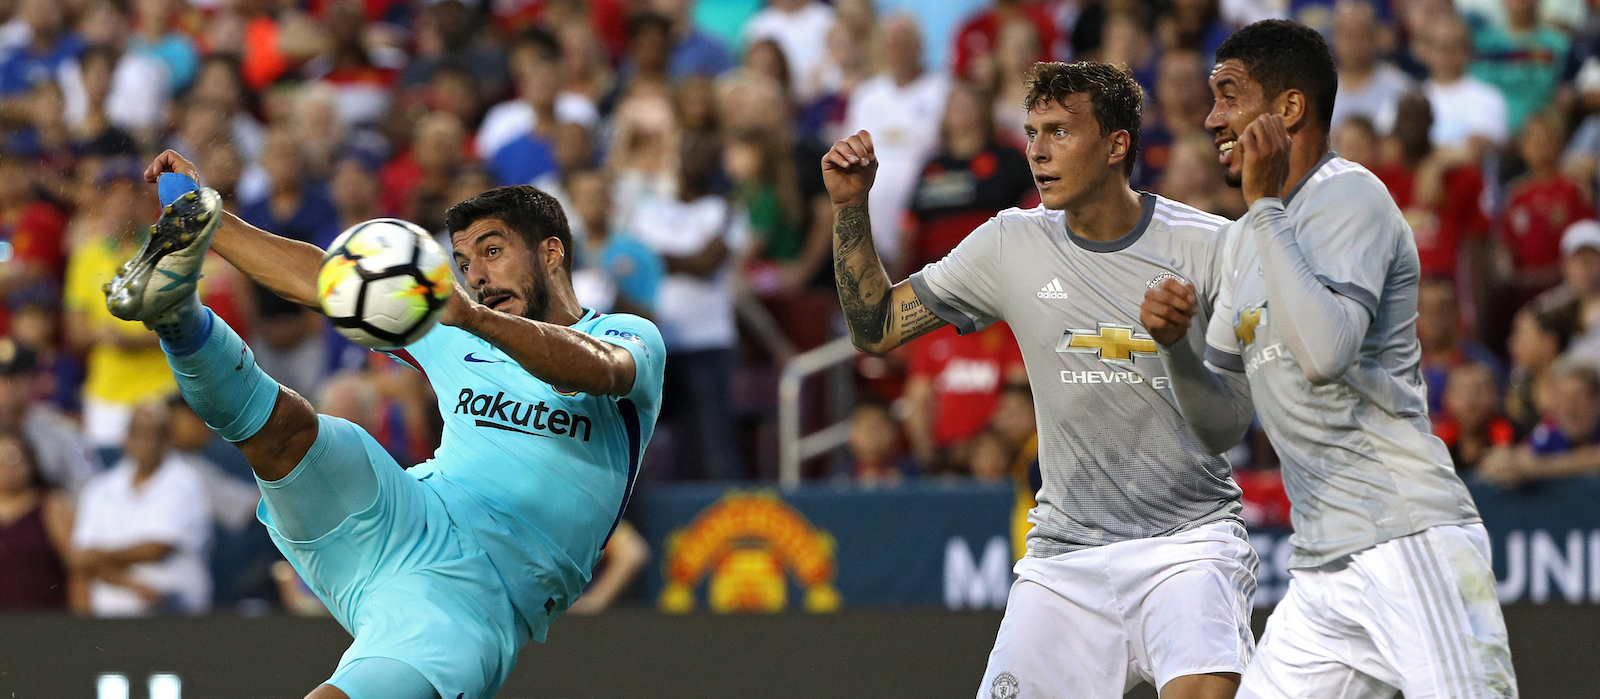 Manchester United fans disappointed with Victor Lindelof's performance against Barcelona